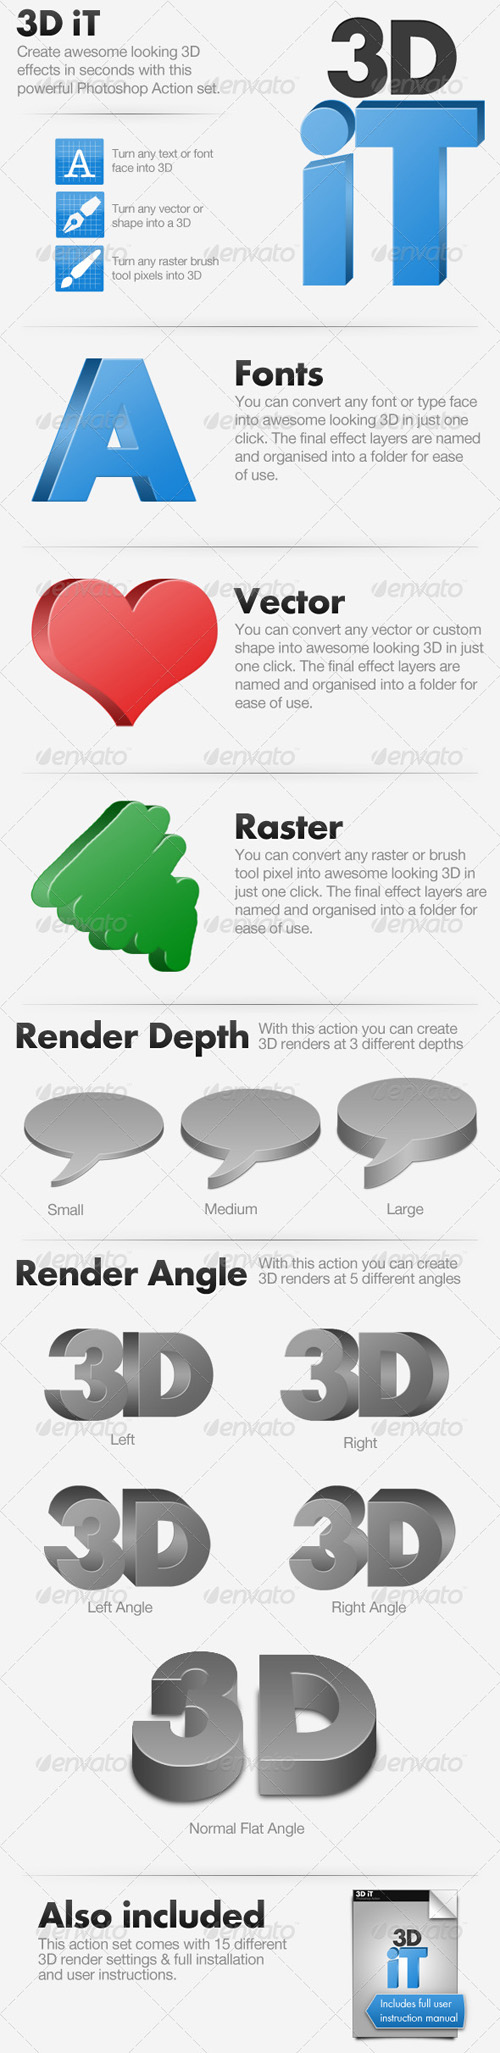 GraphicRiver - 3D iT - 15 3D Rendering Actions